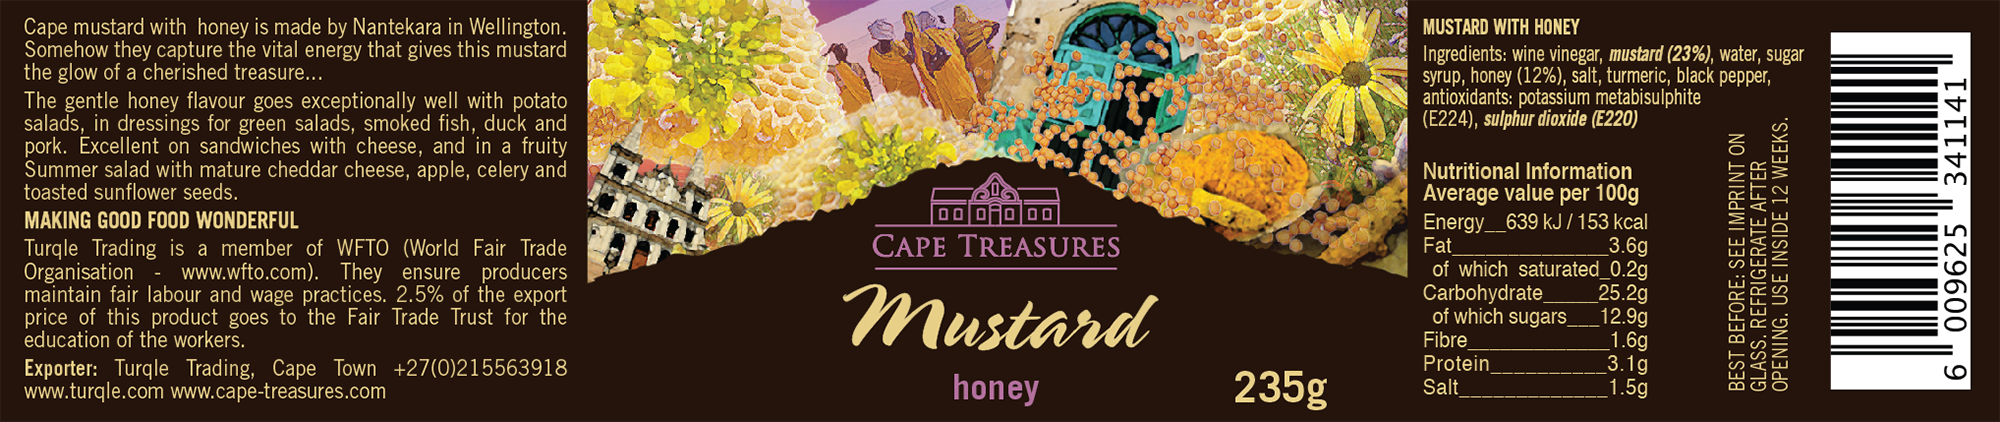 Cape Treasures Honey Mustard label